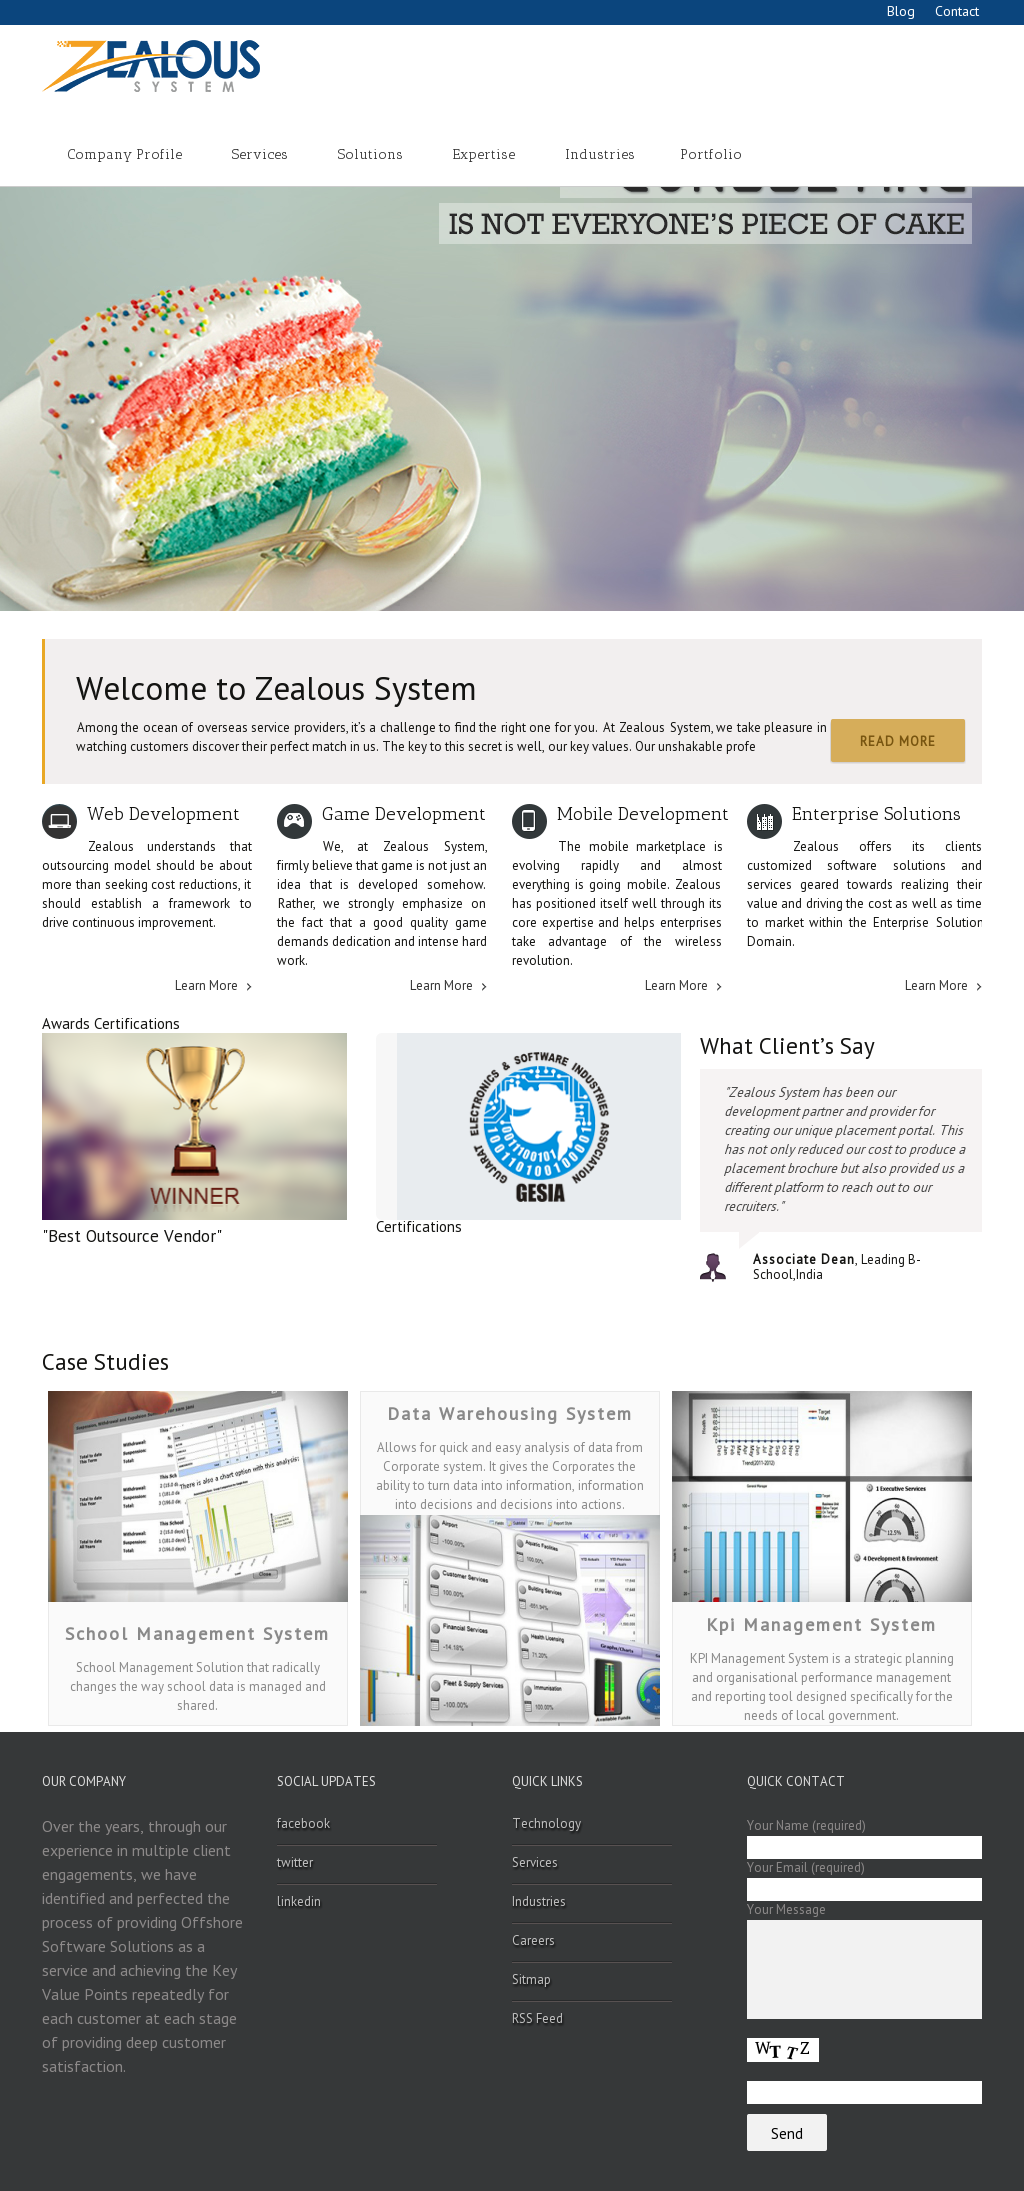 Zealous System Competitors, Revenue and Employees - Owler